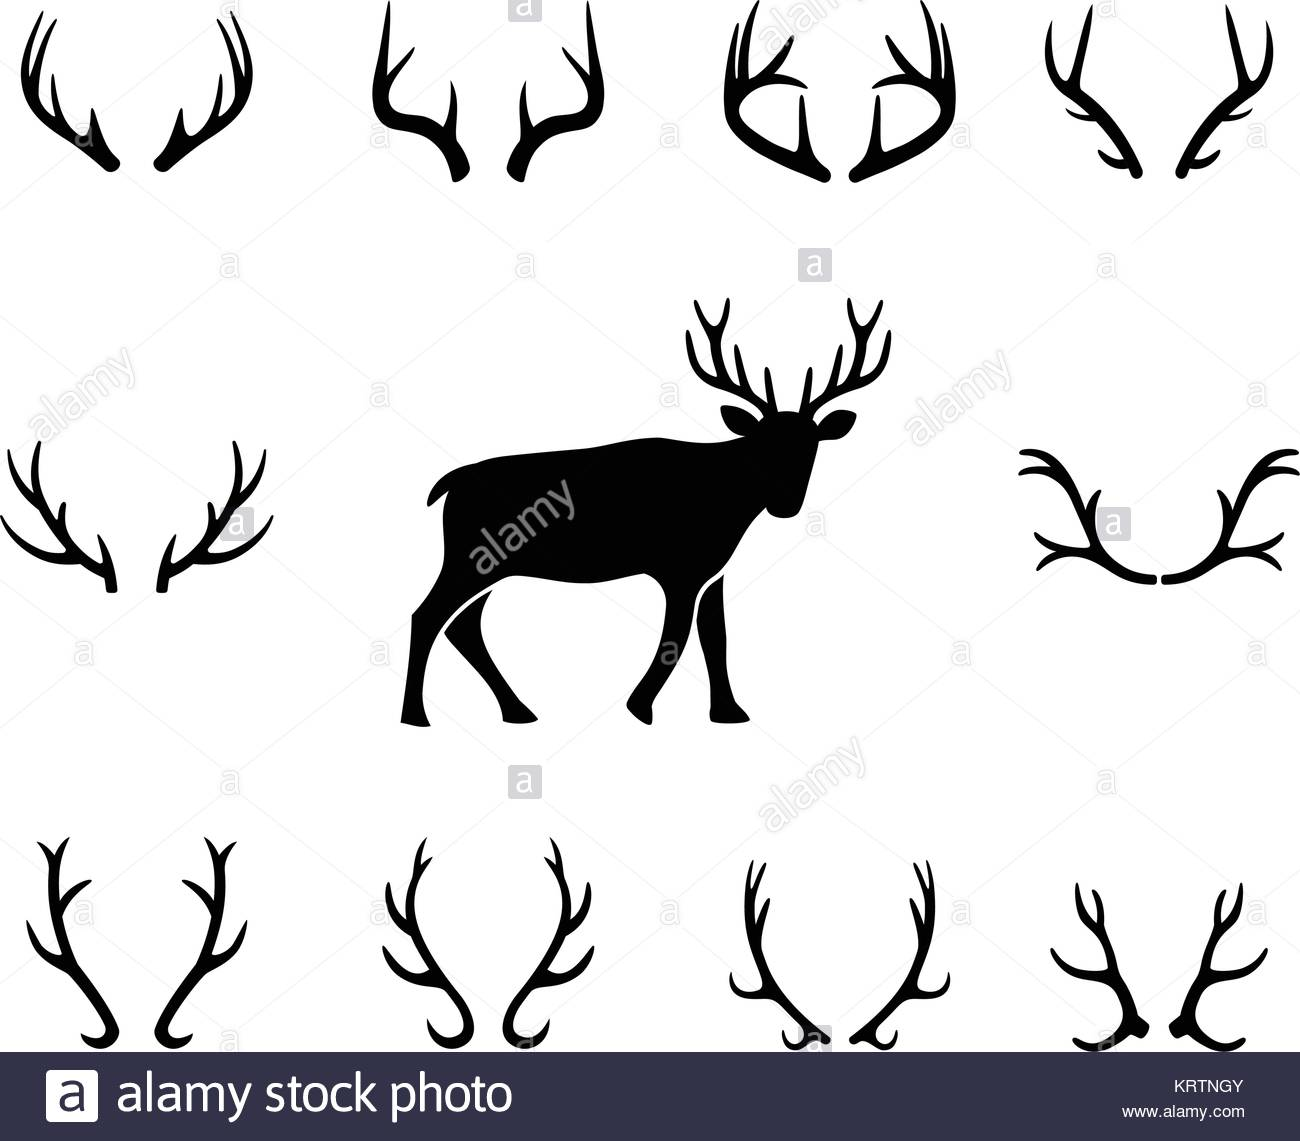 1300x1141 Black Silhouettes Of Different Deer Antlers, Vector Stock Vector